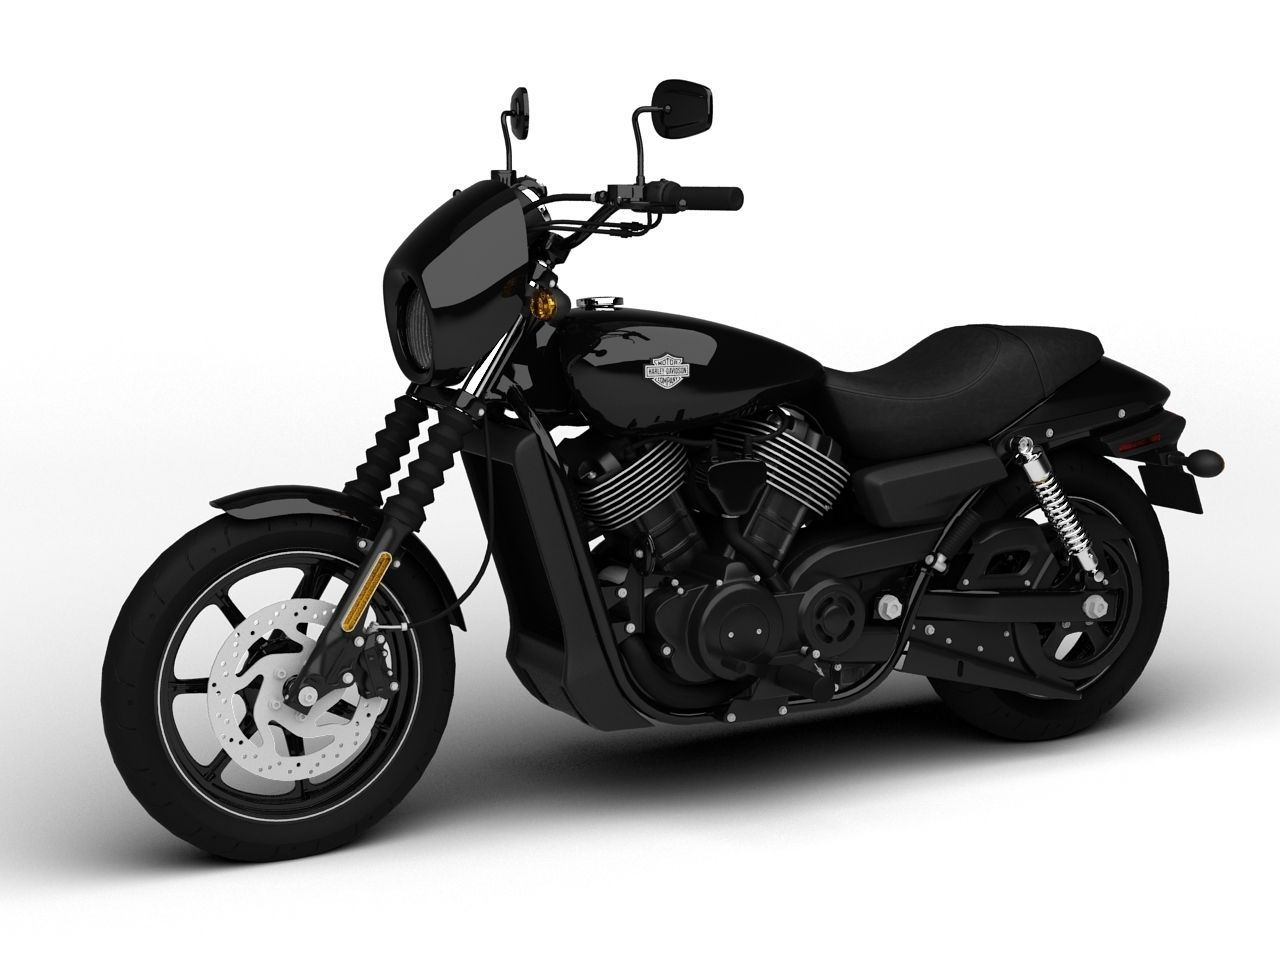 harley davidson street 750 2015 3d model max 3ds fbx c4d dxf mtl. Black Bedroom Furniture Sets. Home Design Ideas